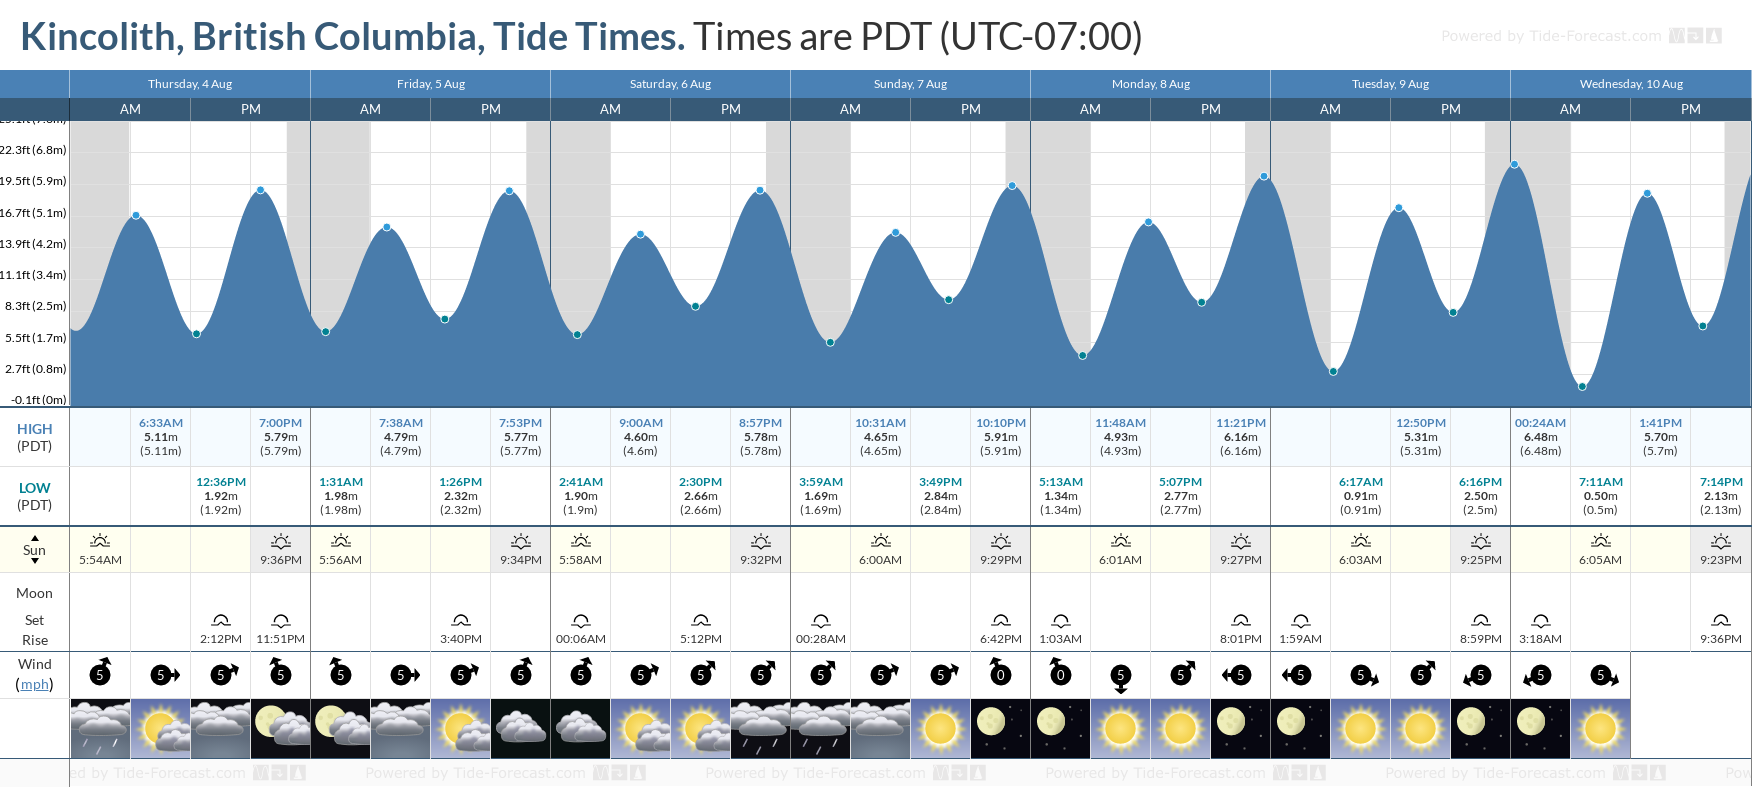 Kincolith, British Columbia Tide Chart including high and low tide tide times for the next 7 days